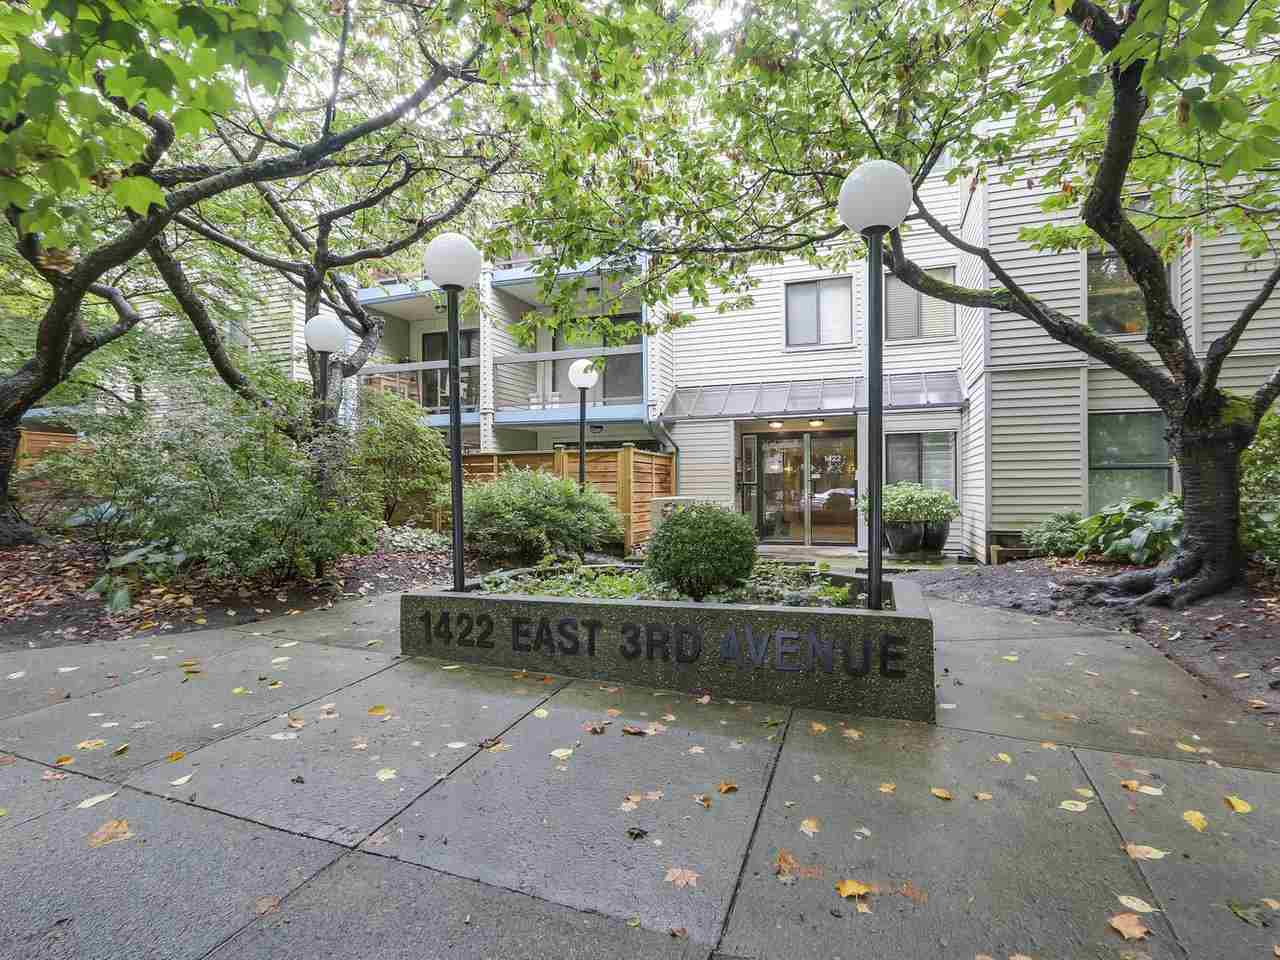 Buliding: 1422 East 3rd Avenue, Vancouver, BC